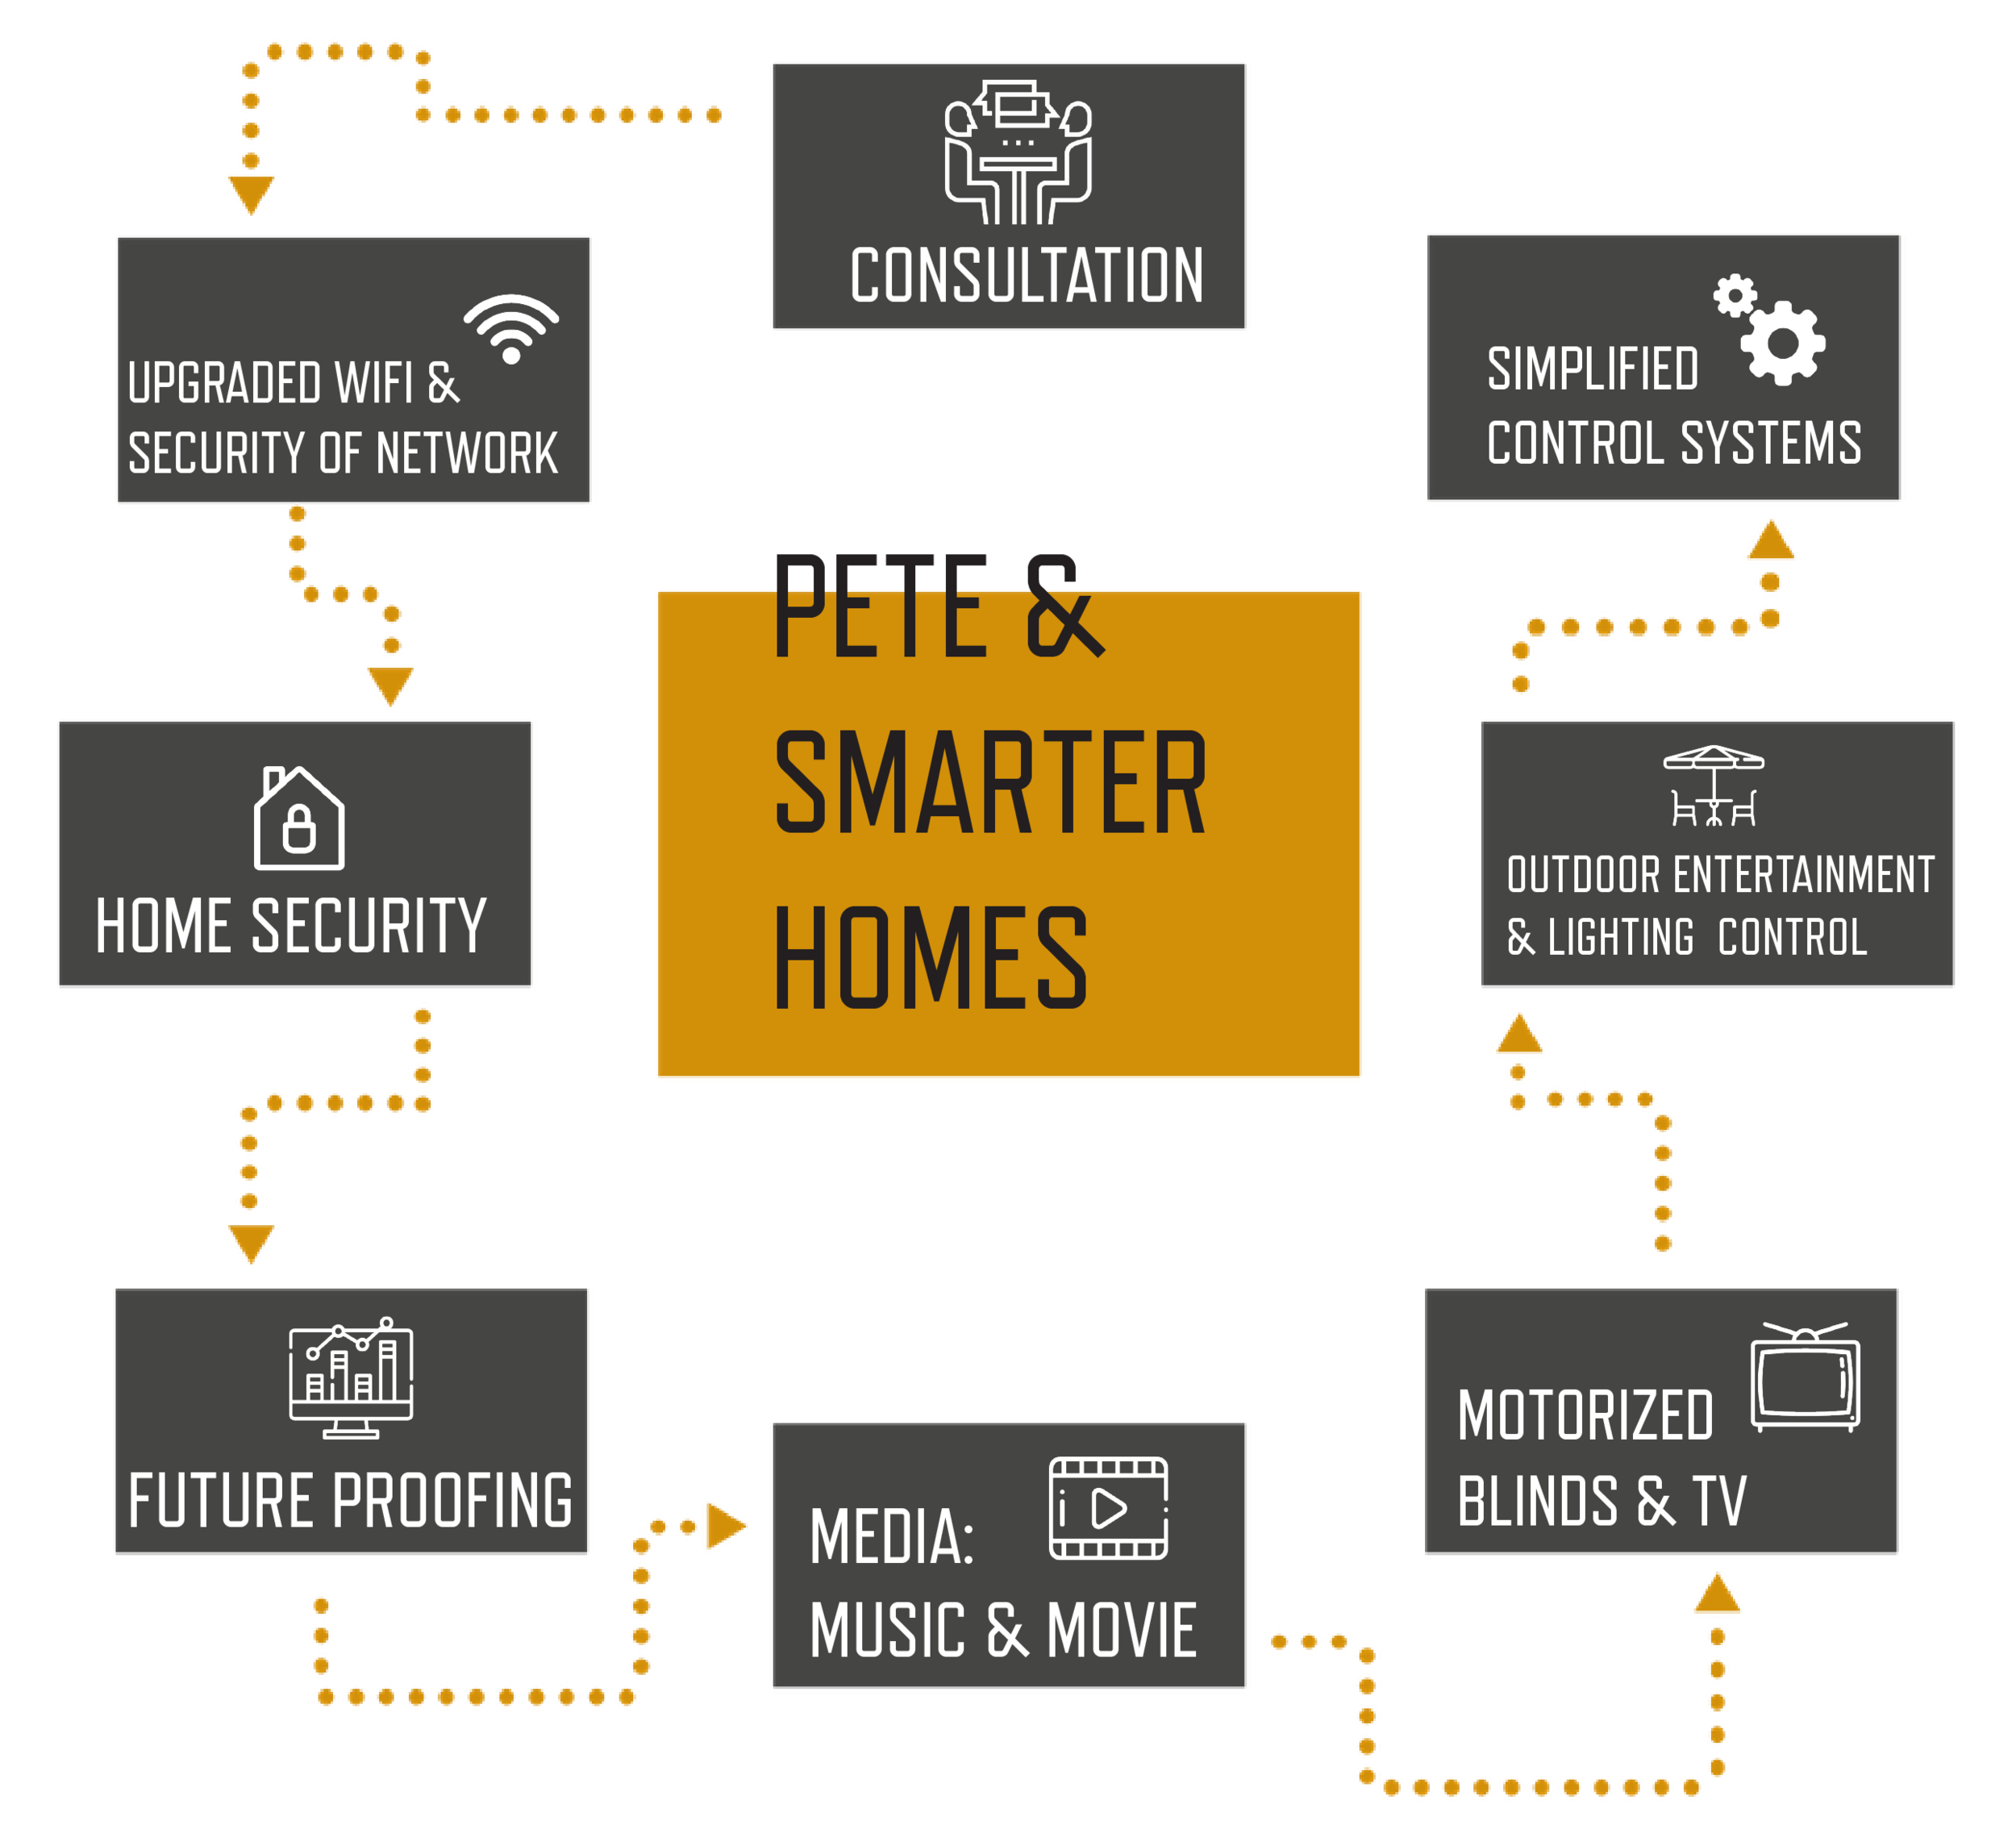 smarter homes new client process.png